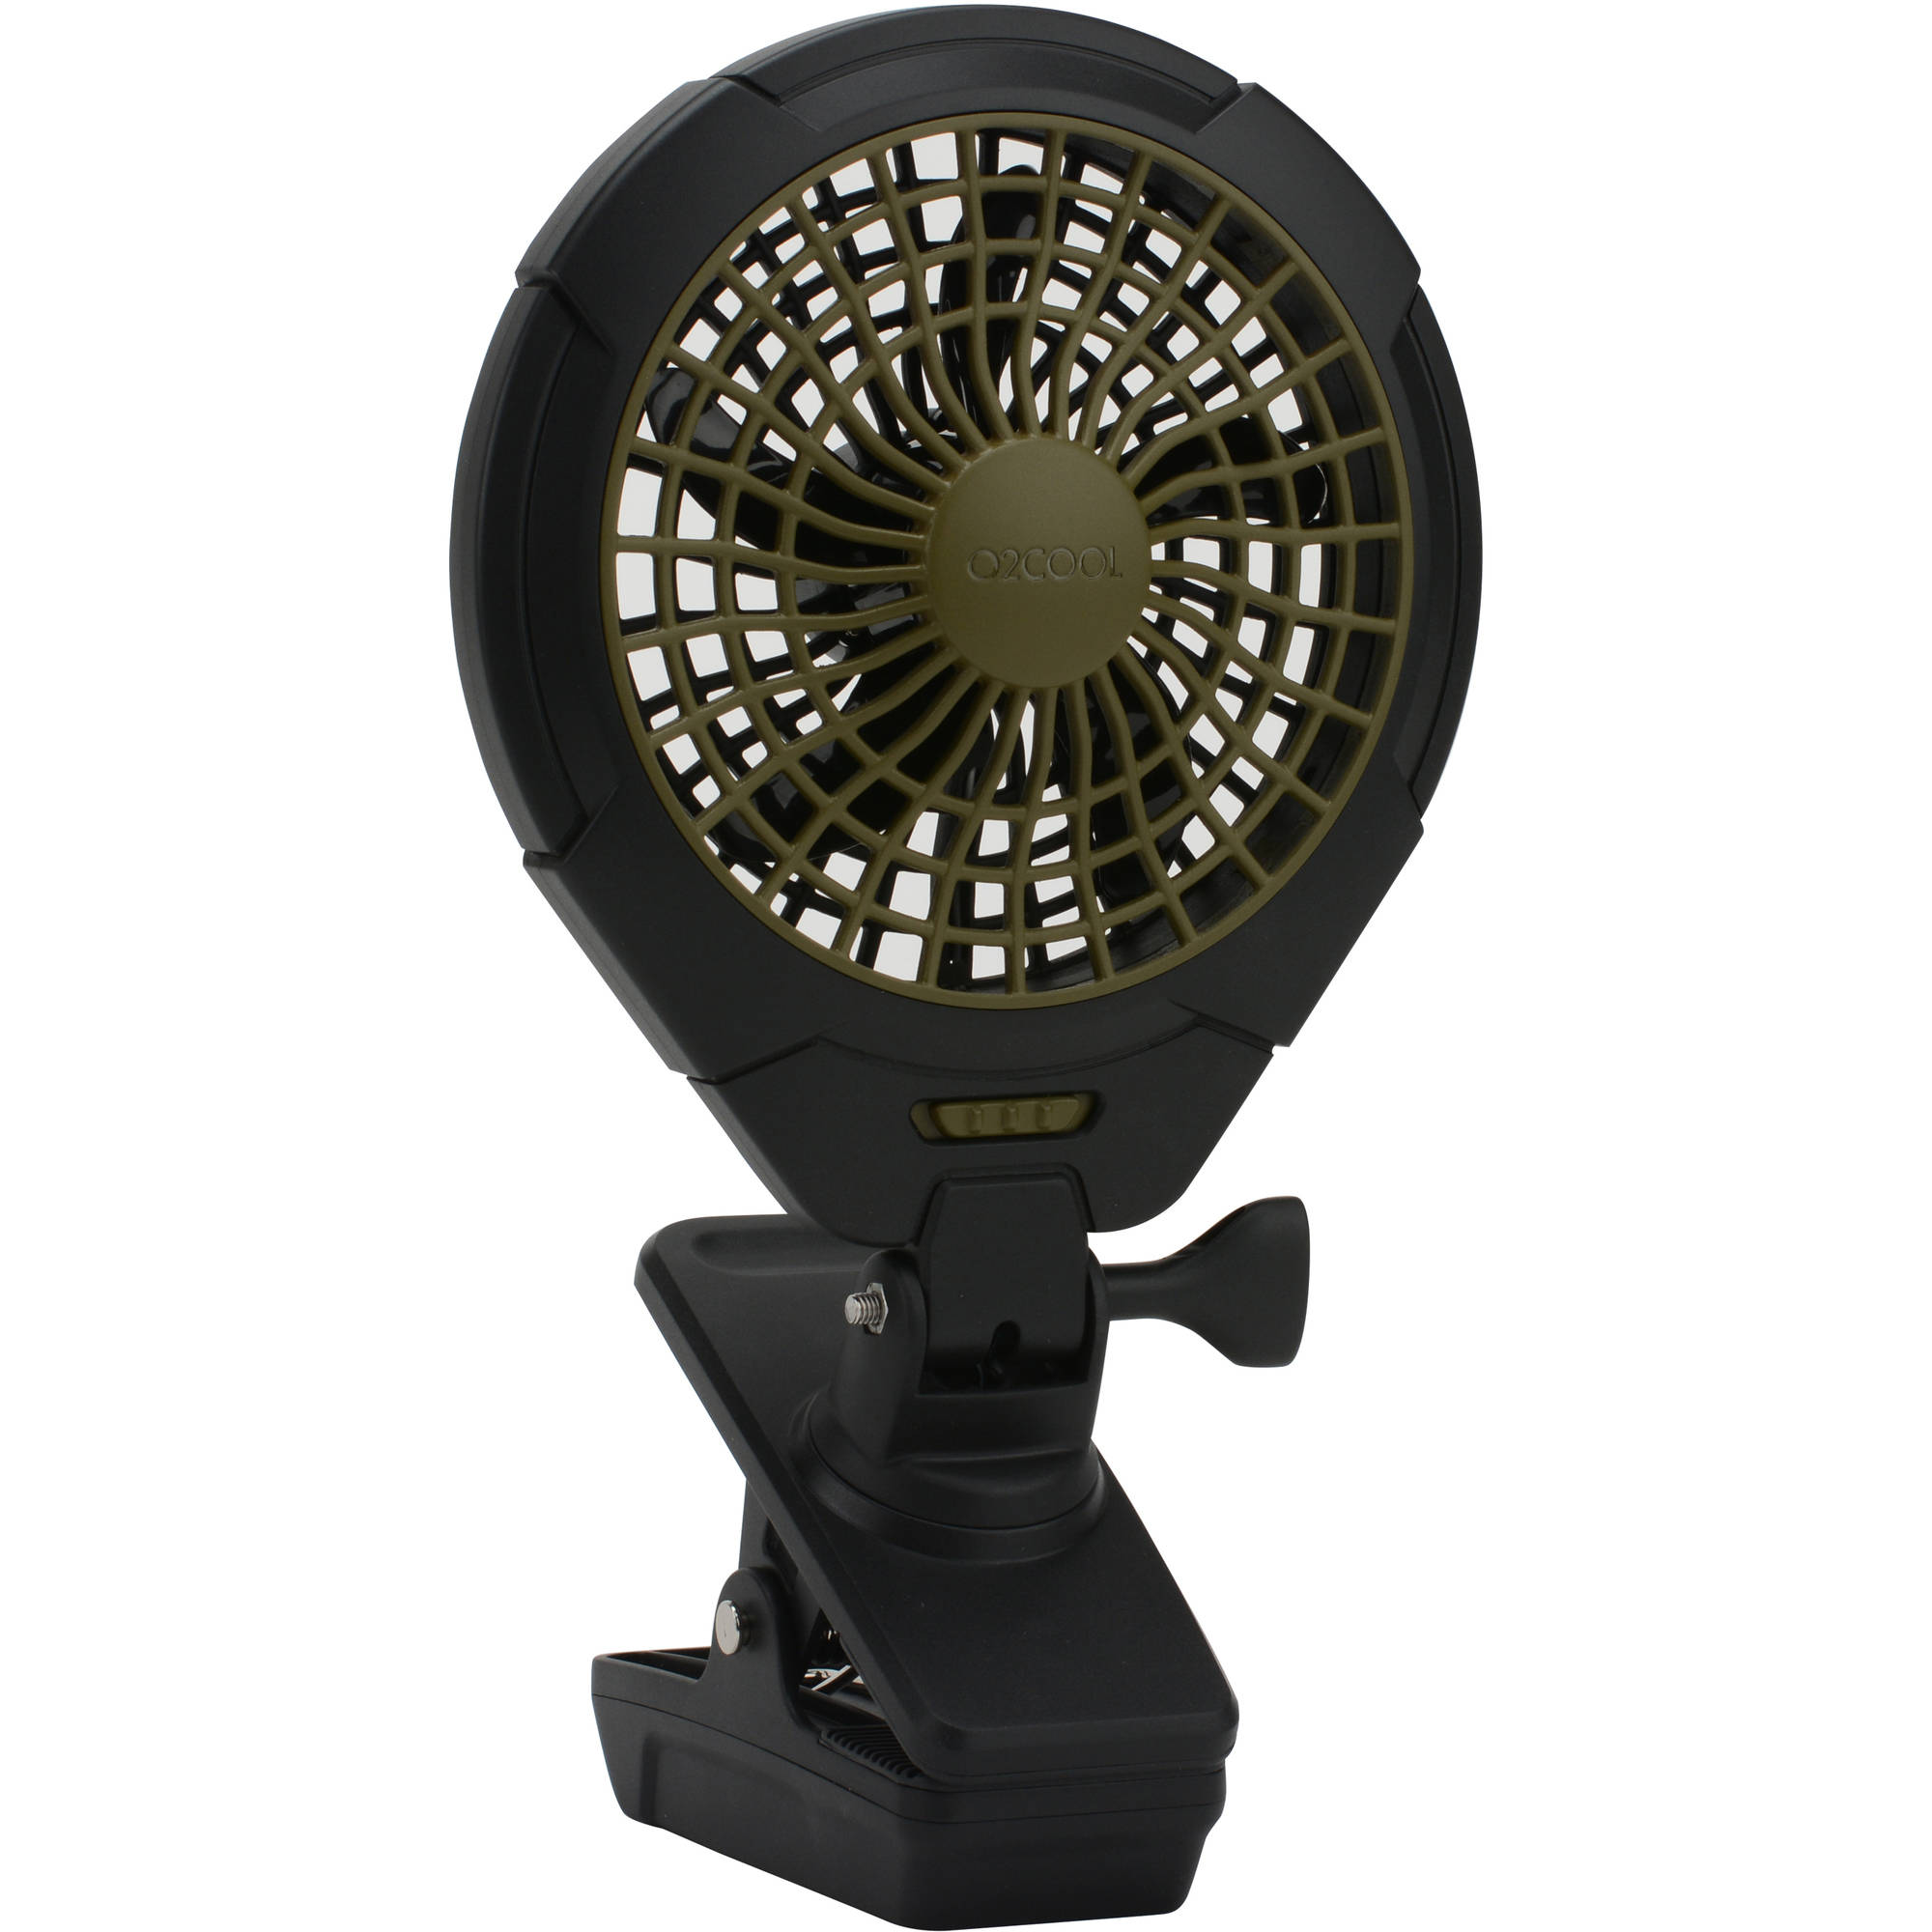 O2cool 5 inch battery operated clip fan walmart com